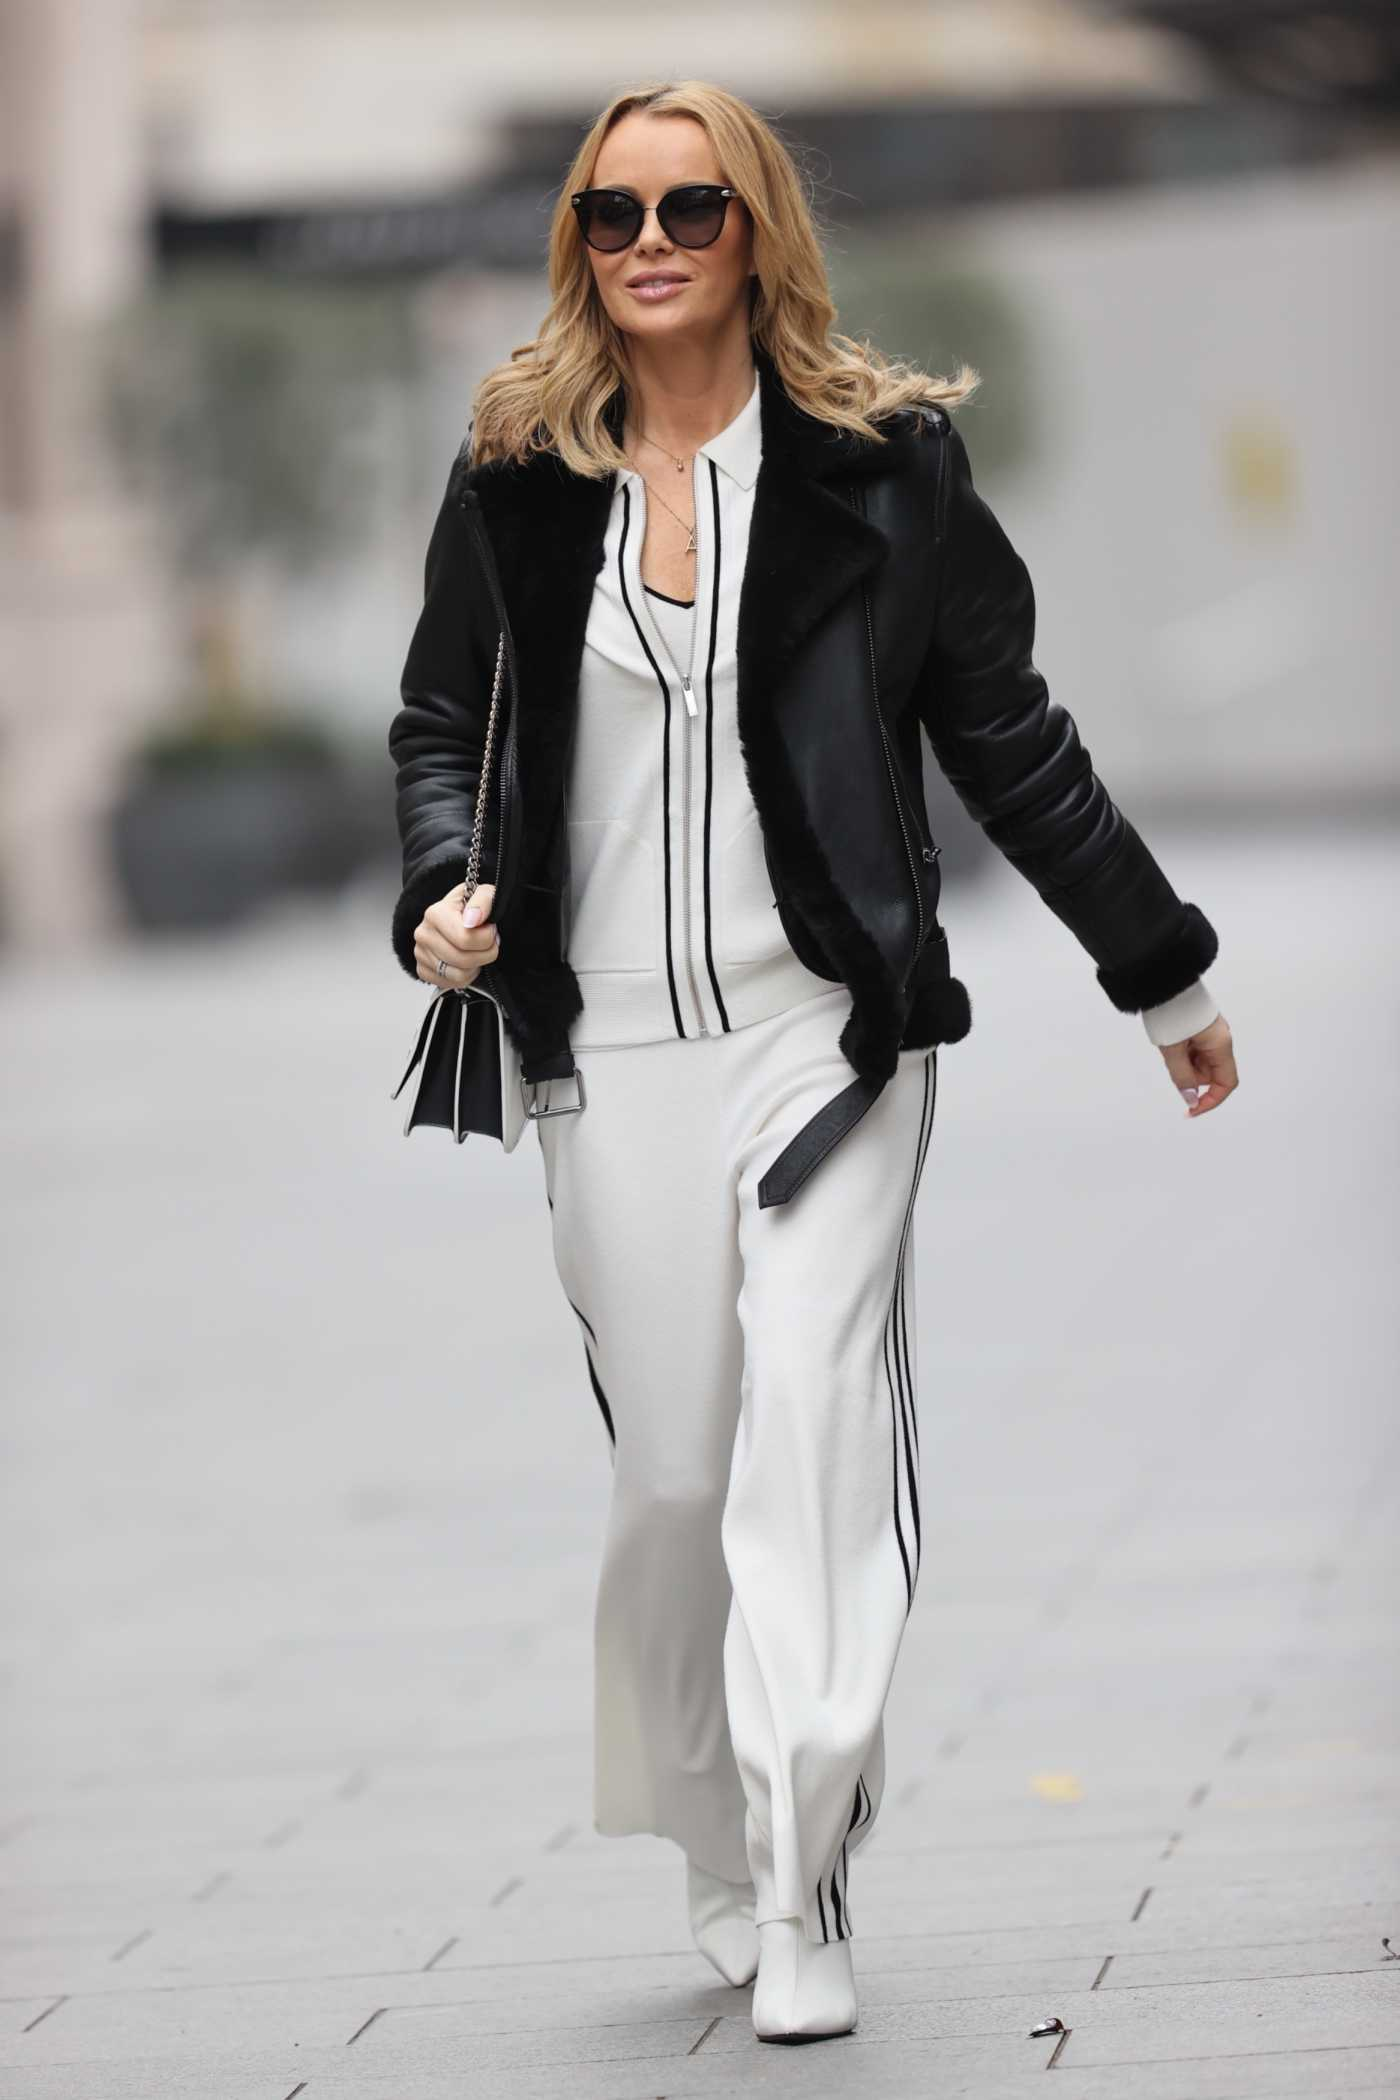 Amanda Holden in a White Sweatsuit Leaves the Global Studios in London 02/01/2021